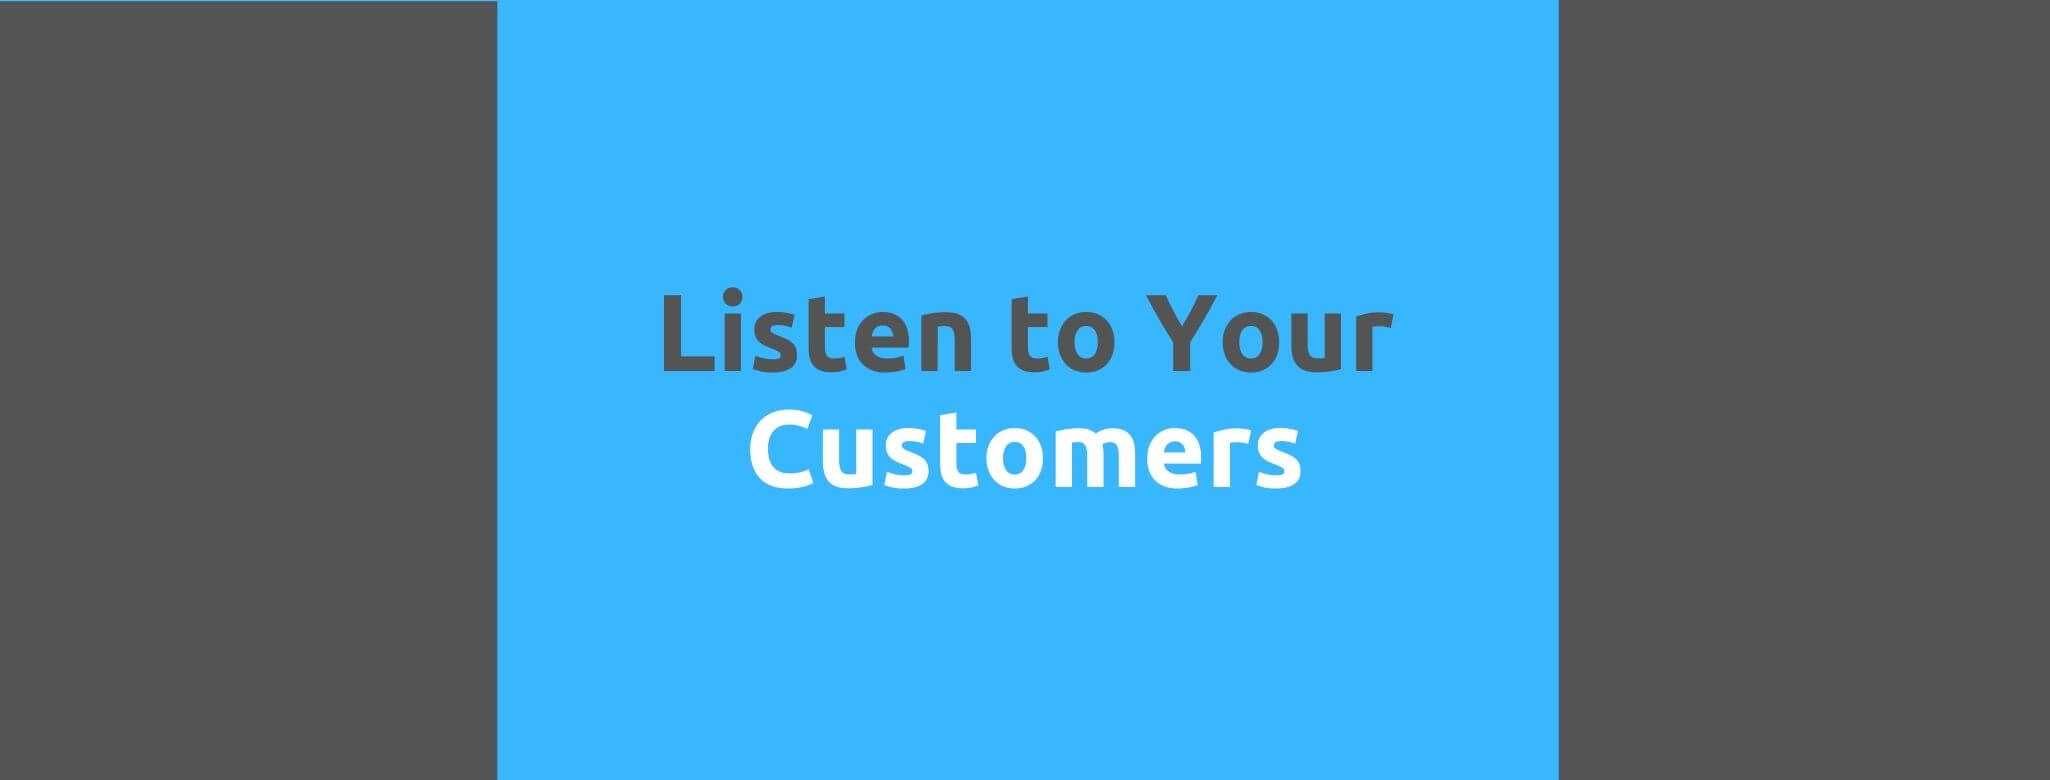 Listen to Your Customers - 35 Things Every Seller Should Do to Offer Great Customer Service - Replyco Helpdesk Software for eCommerce